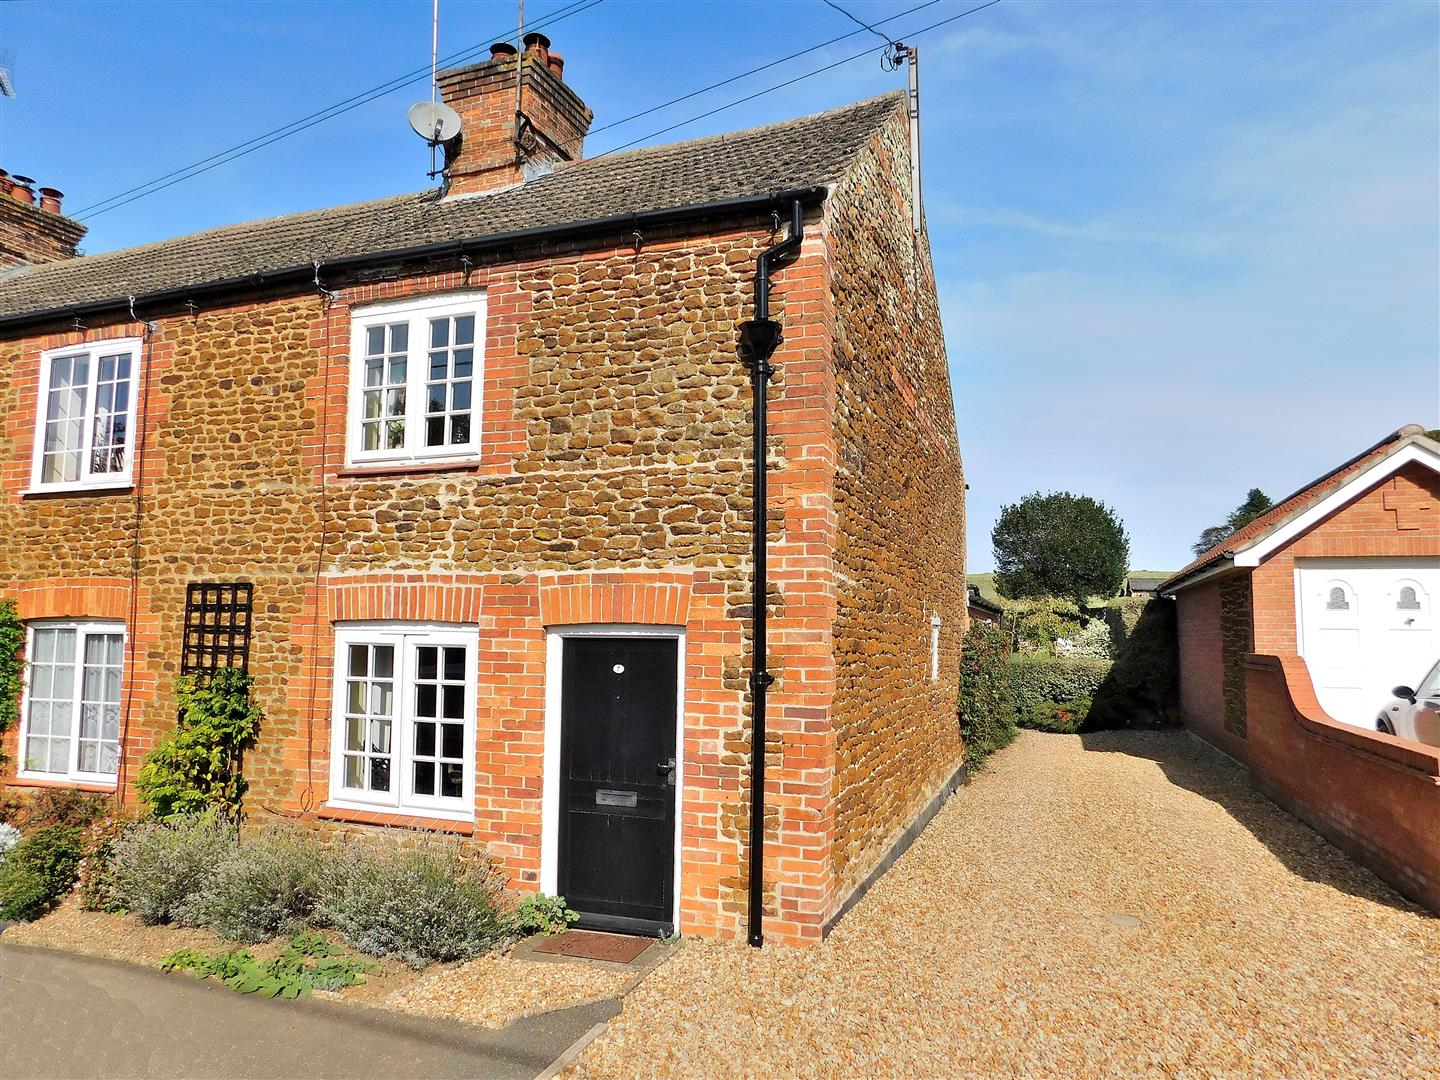 2 bed cottage for sale in King's Lynn, PE31 6JA 0